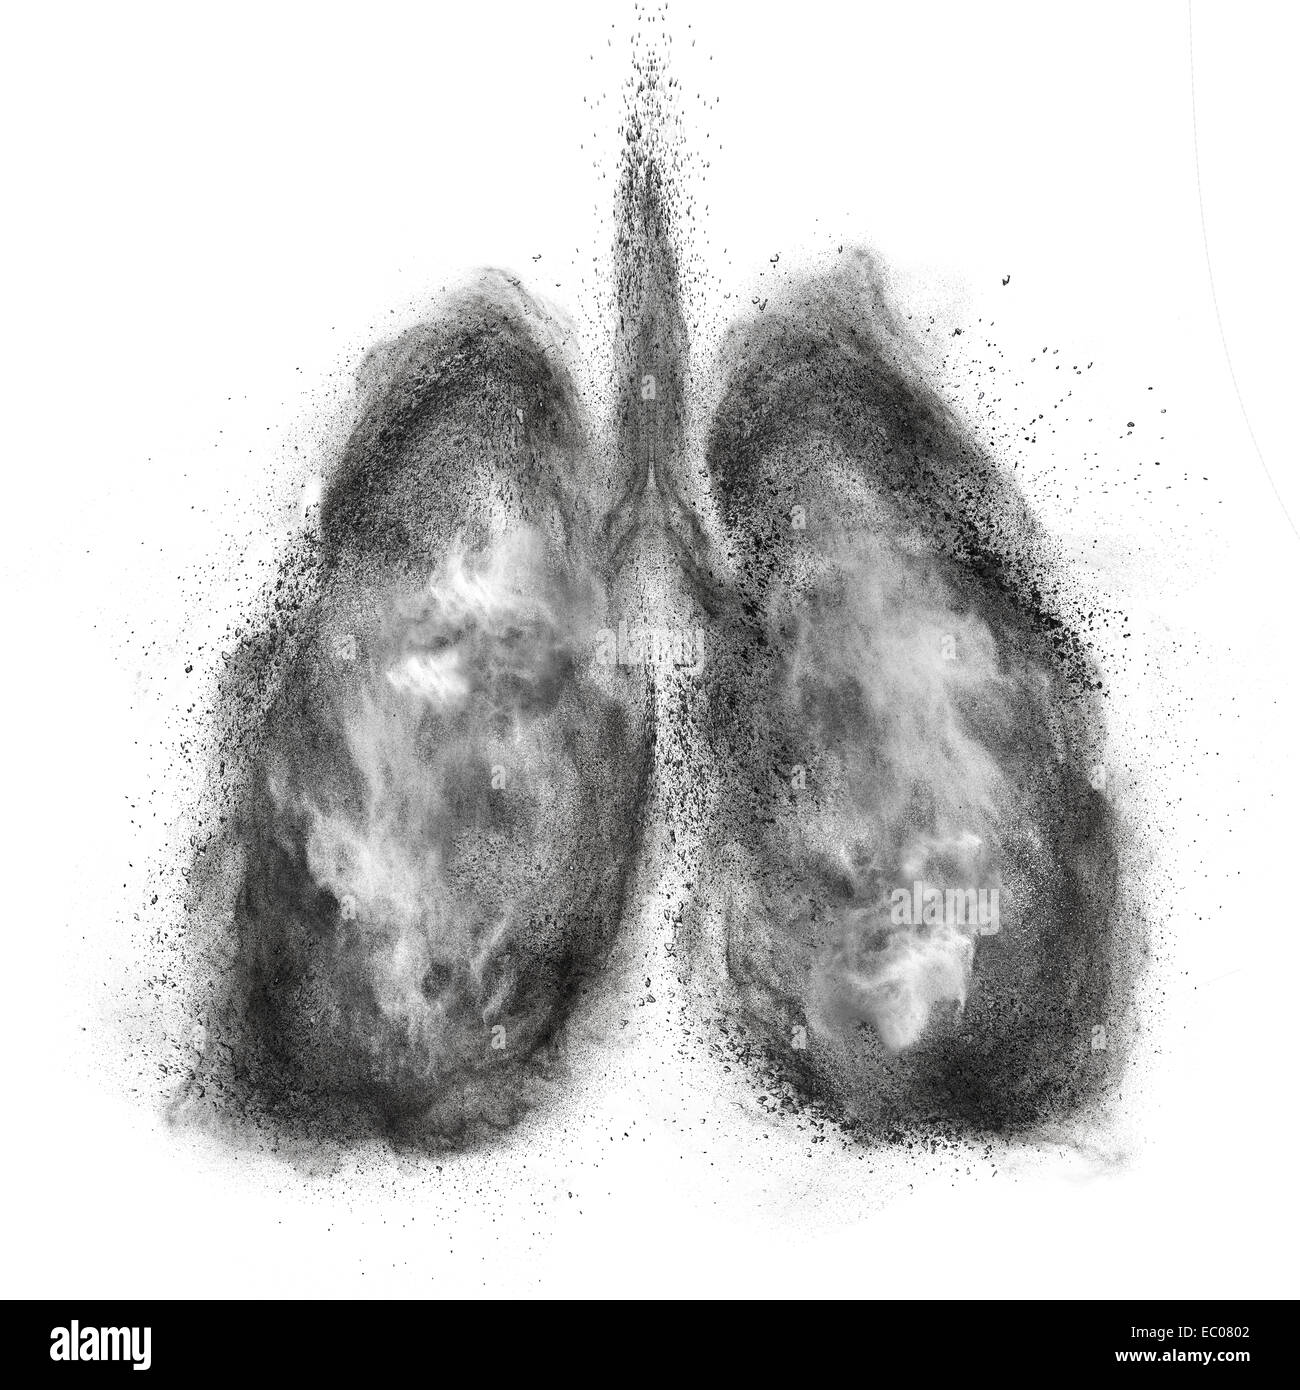 Lungs made of black powder explosion isolated on white background - Stock Image